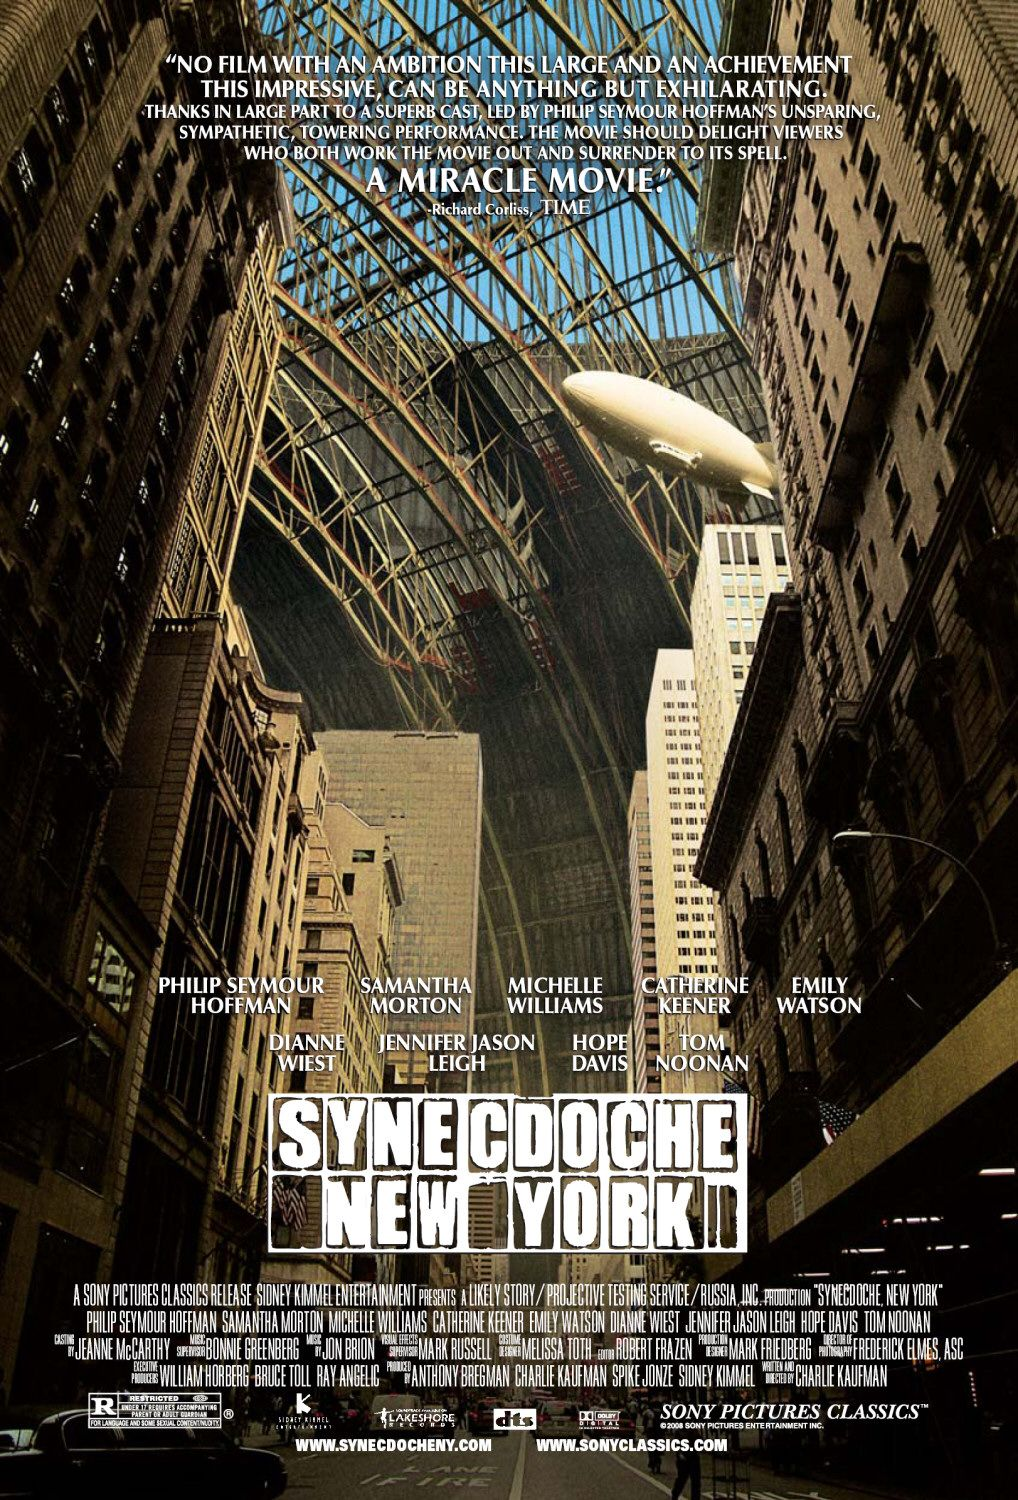 The theatrical release poster for Synecdoche, New York. It is a photograph of a city street, taken from the middle of the street. Tall buildings dominate the foreground of the image. A zeppelin is prominent in the background with curved metal beams enveloping the entire scene and blocking out the skyline.